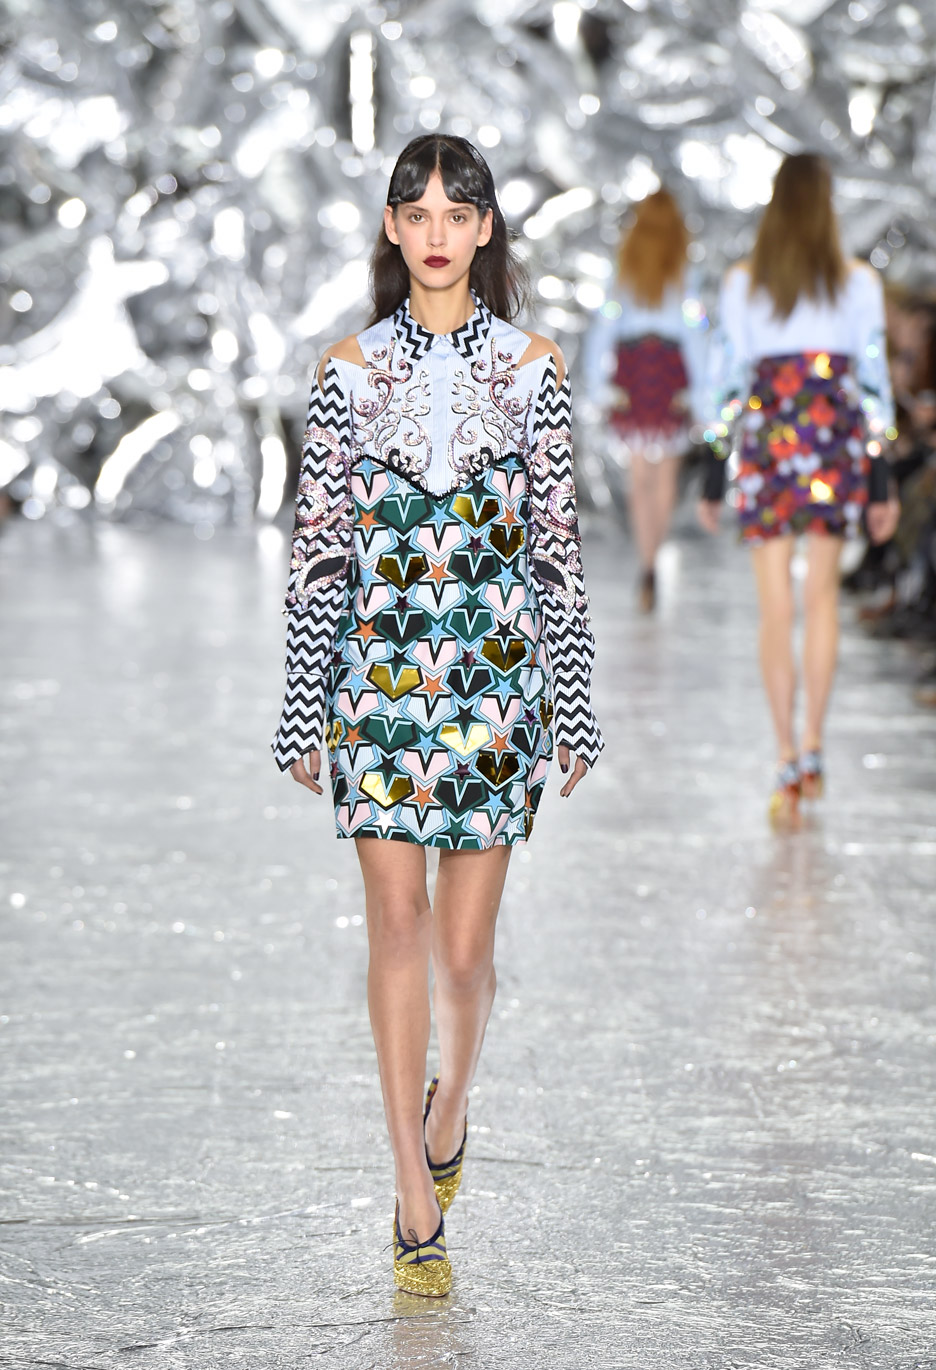 Mary Katrantzou AW16 set design